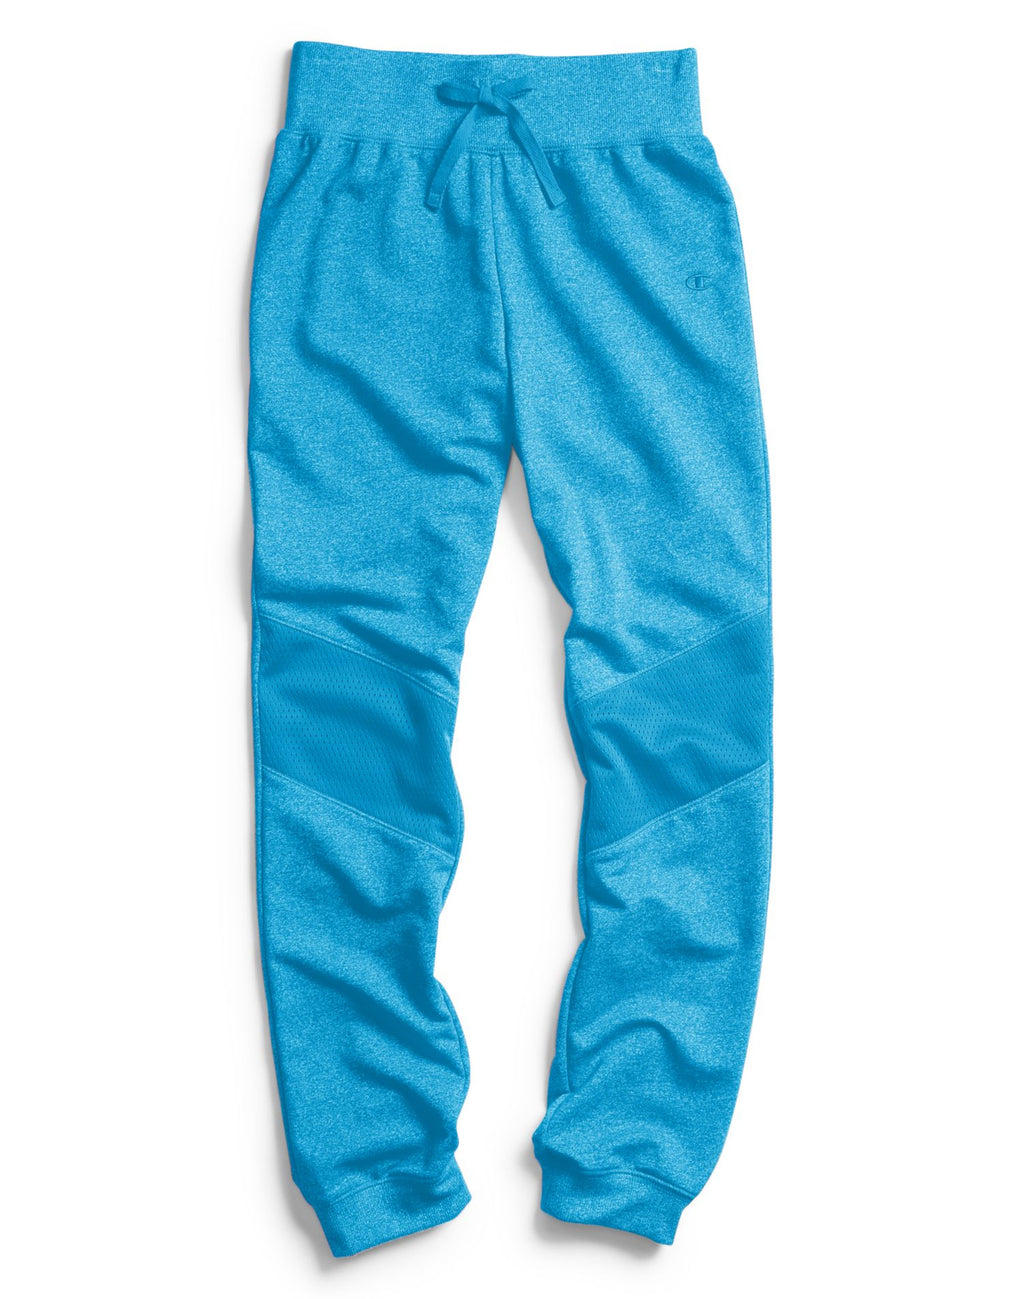 Champion Girl's Mesh Overlay Cuff Pants